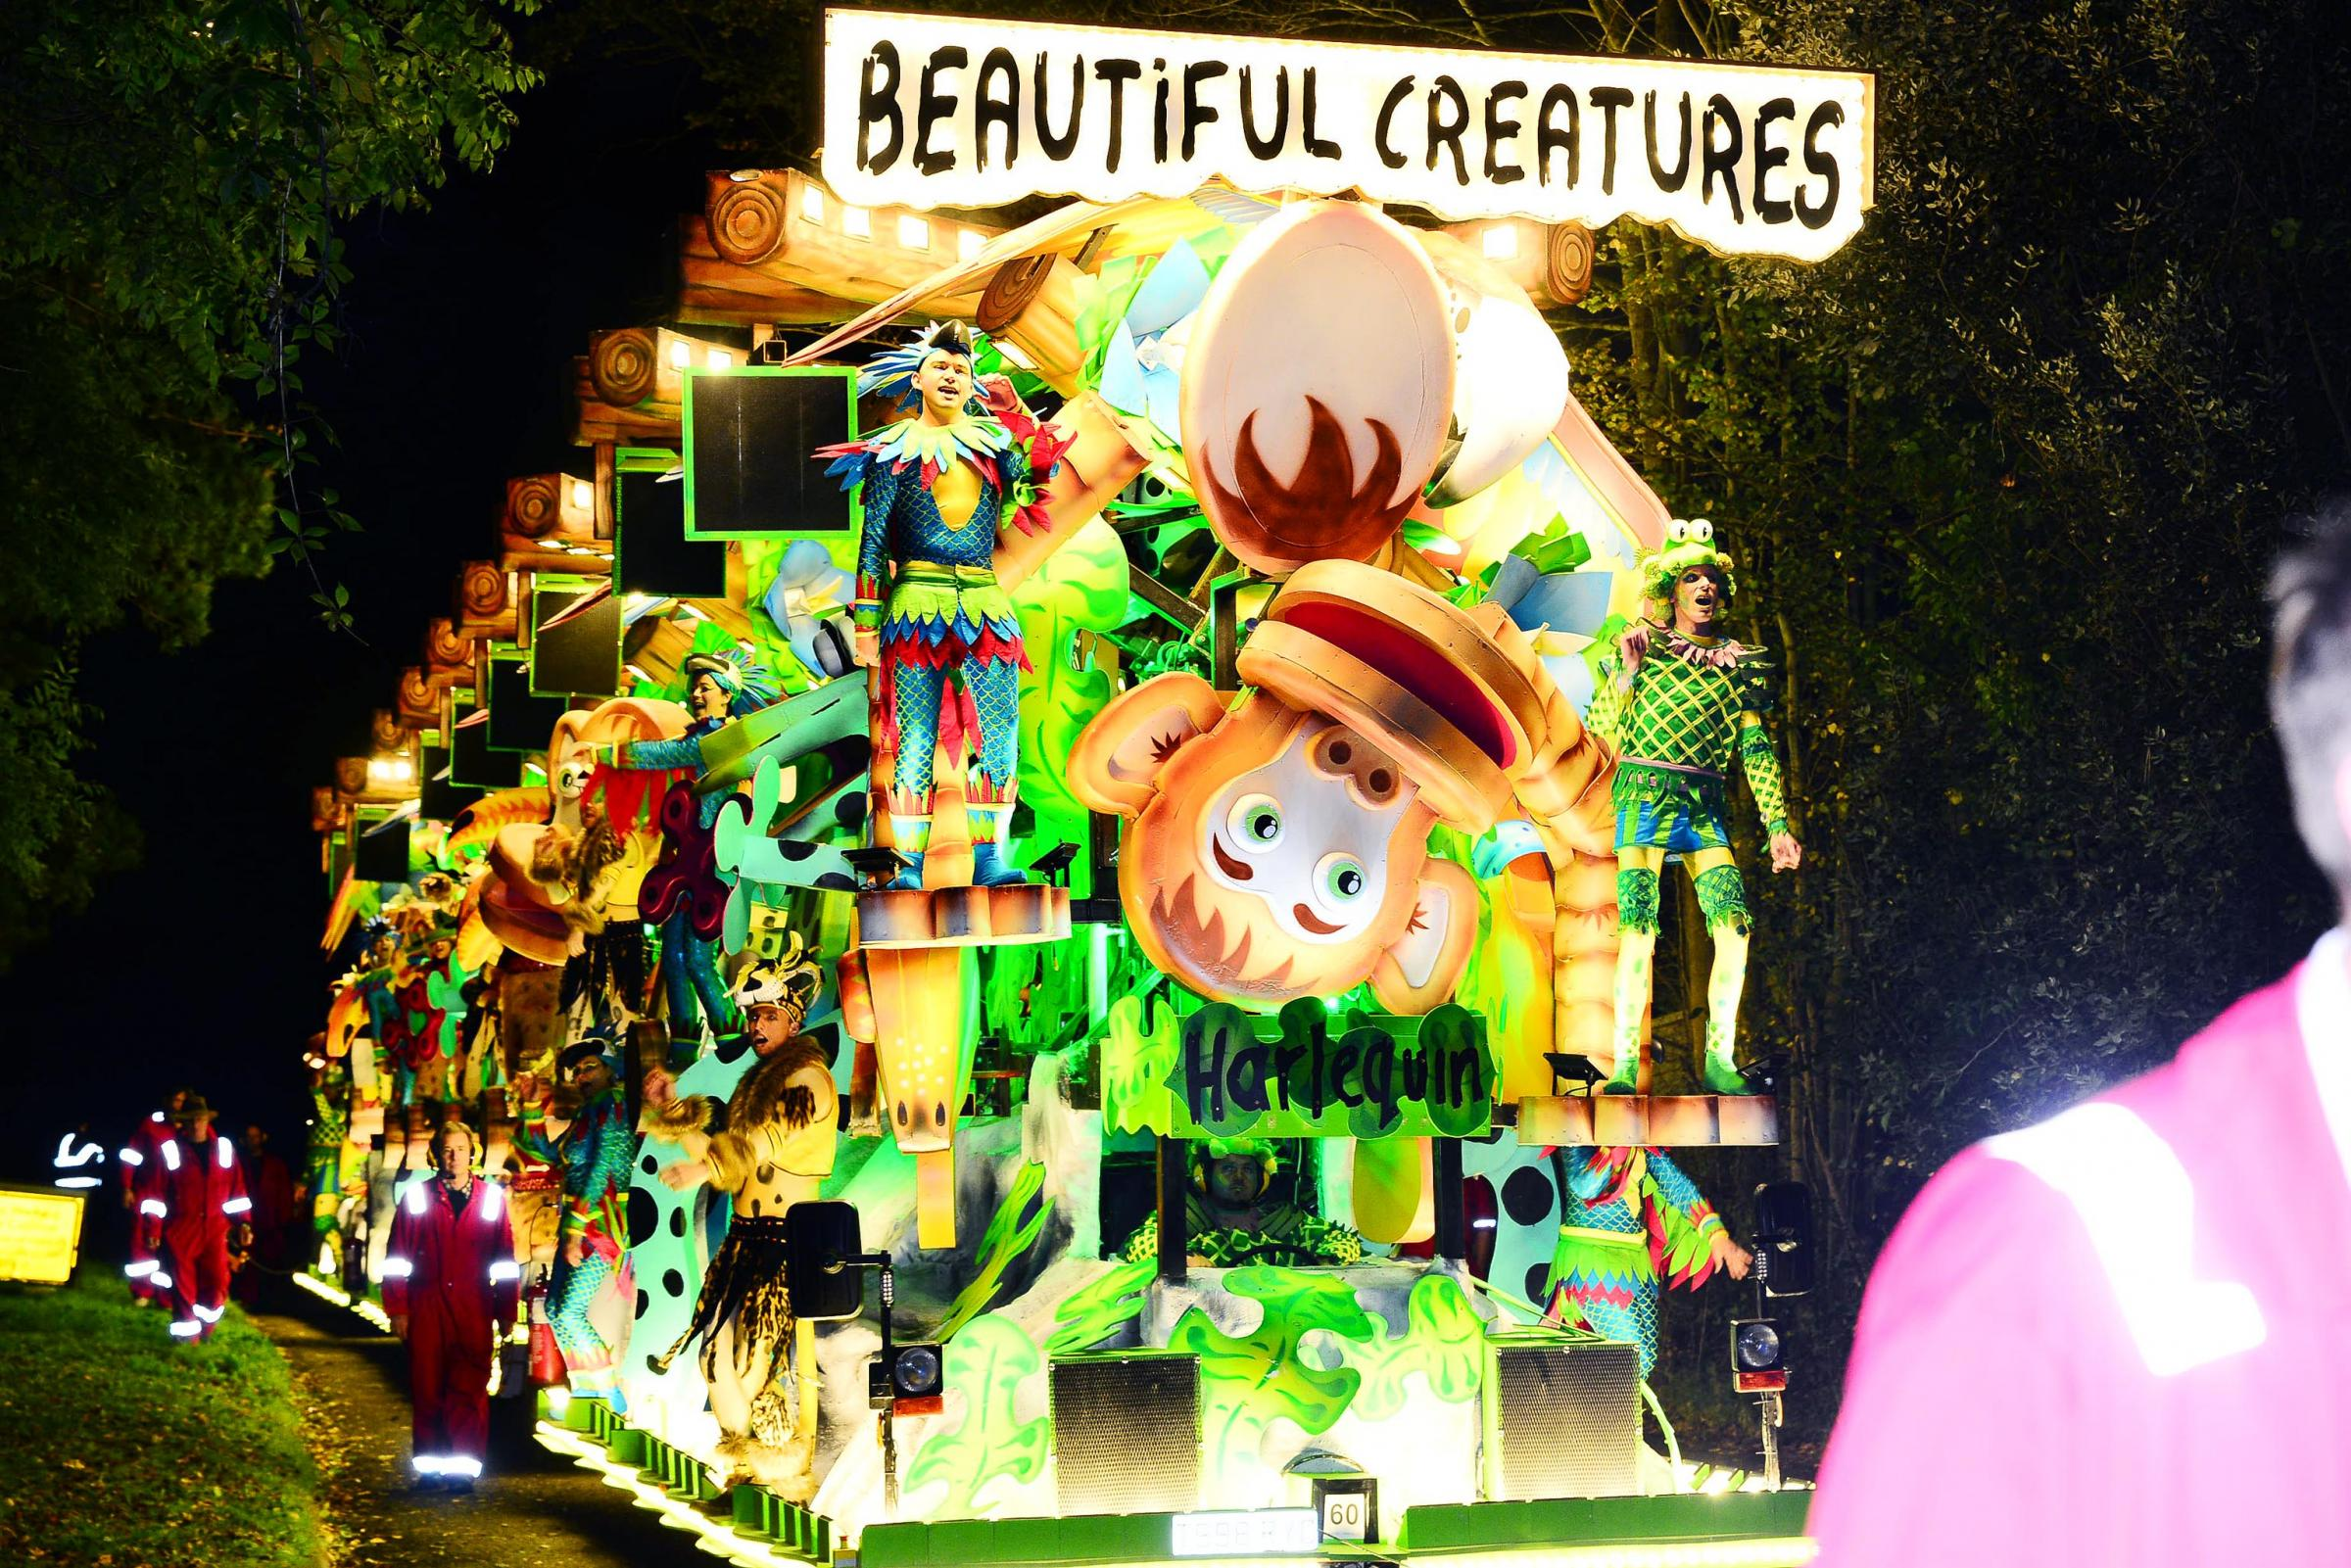 One of last year's entries to Ilminster Carnival